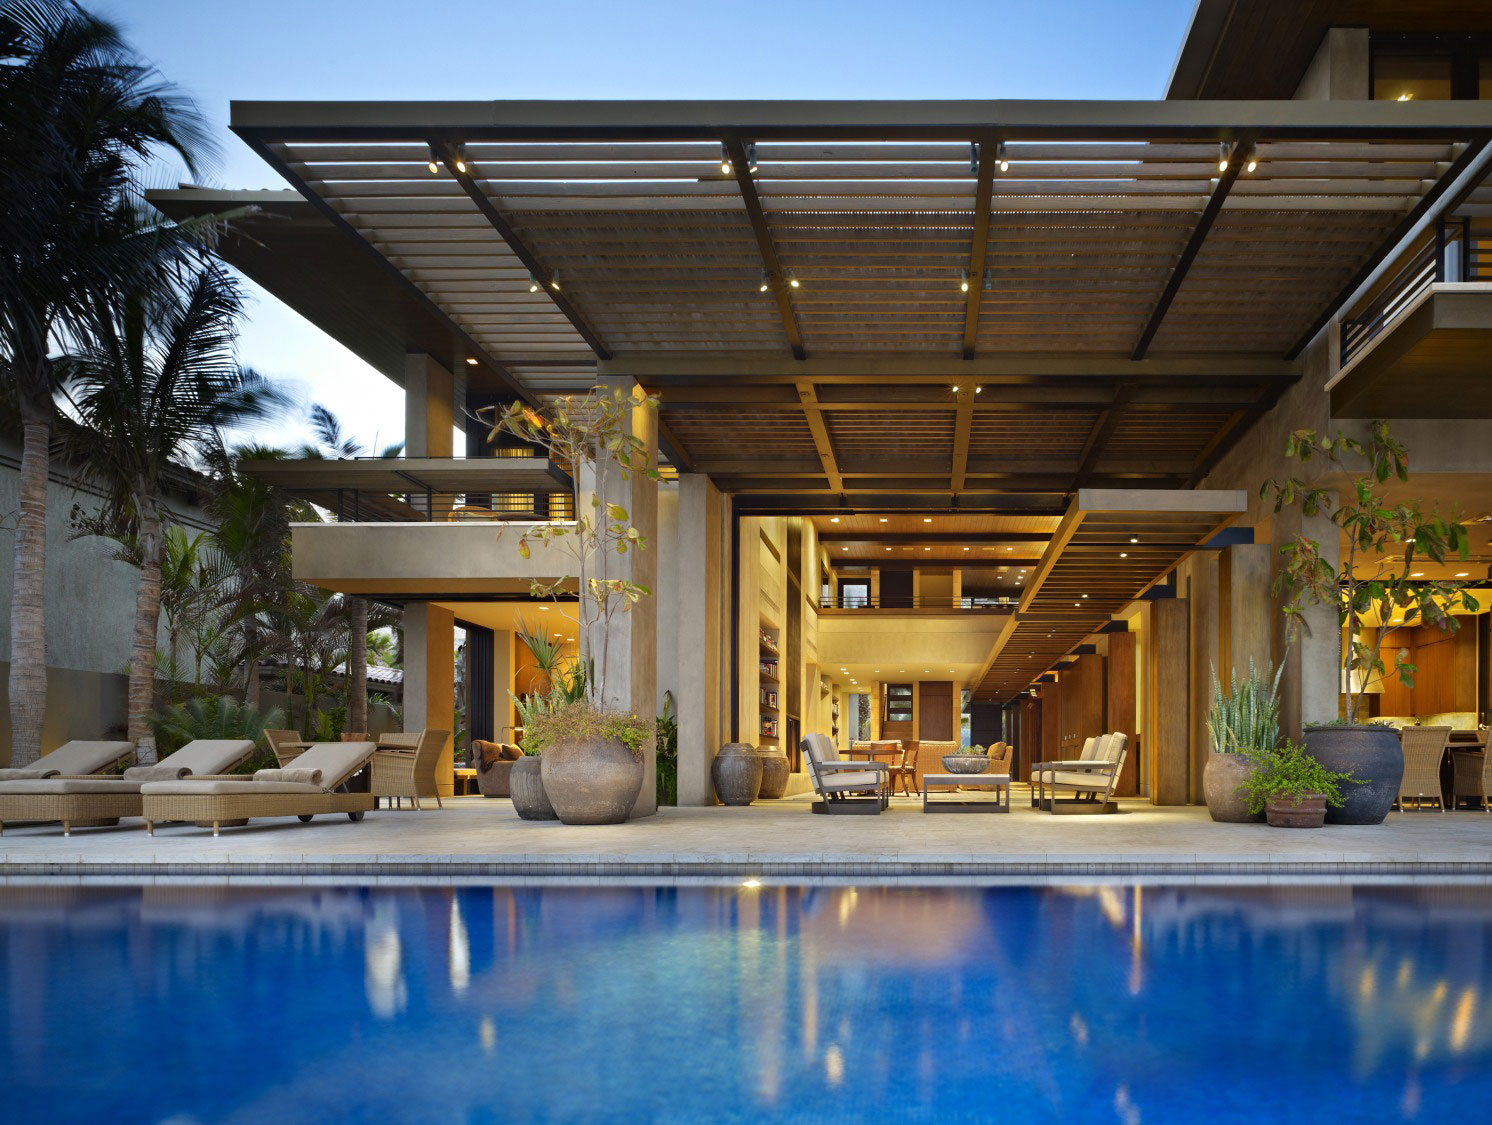 Mexico Residence by Olson Kundig Architects